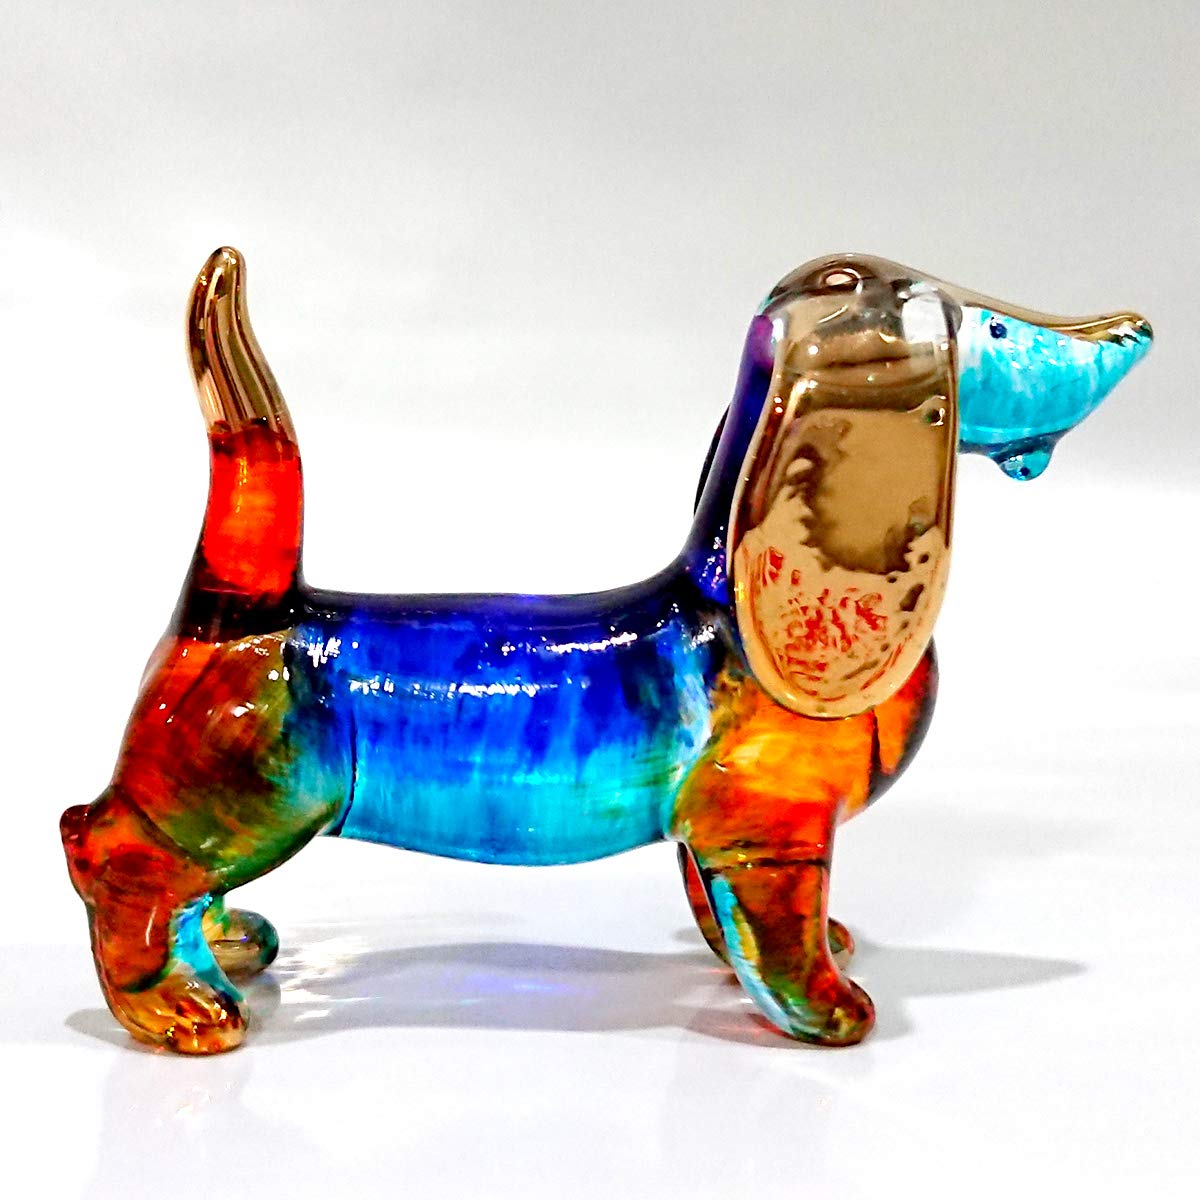 Sansukjai Dachshund Miniature Figurines Dog Animals Hand Painted Blown Glass Art Gold Trim Collectible Gift Decorate, Blue Orange